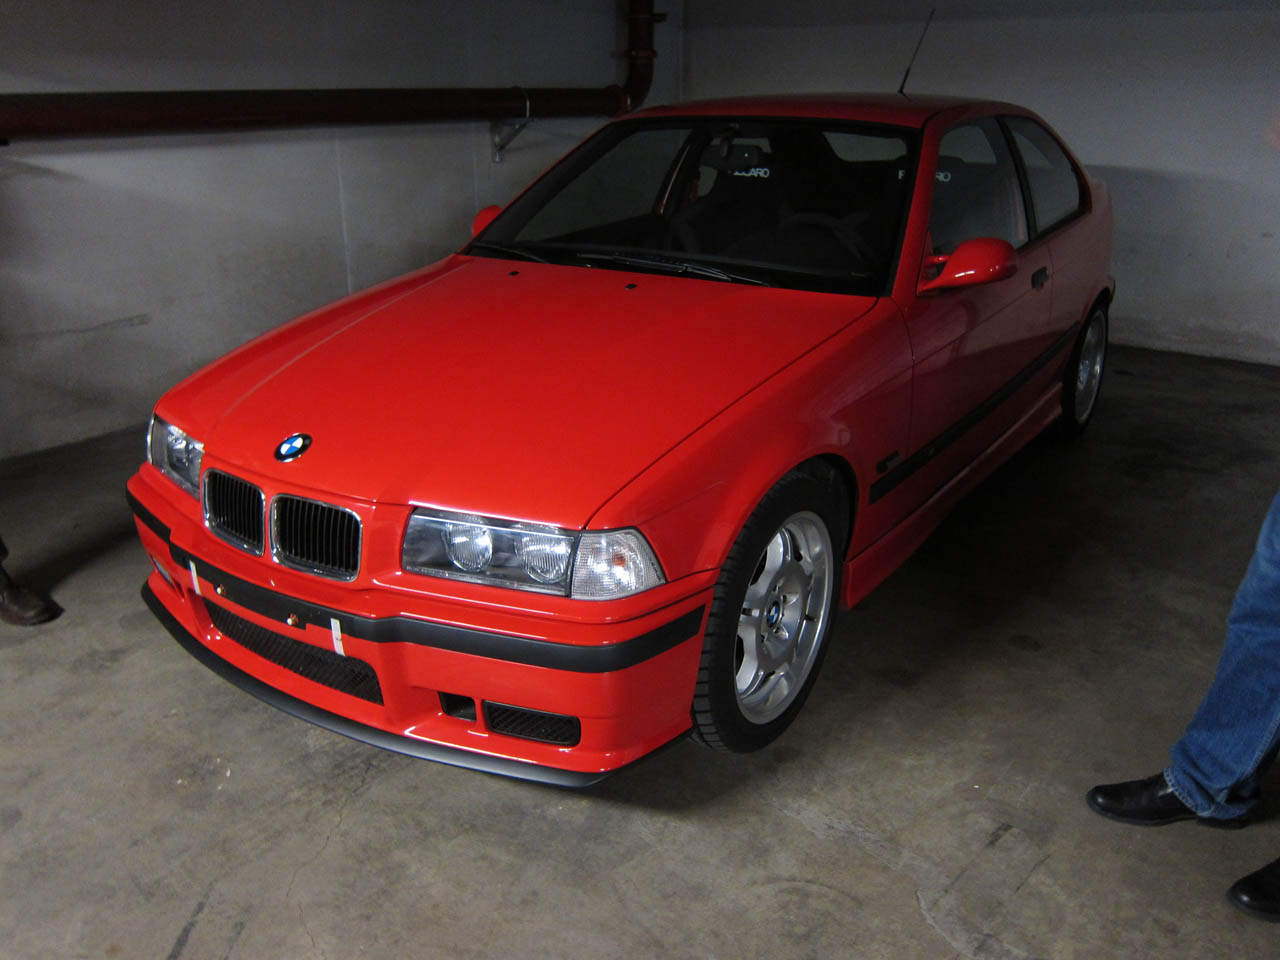 bmw e36 compact m3 concept 1996 bmw concepts and. Black Bedroom Furniture Sets. Home Design Ideas